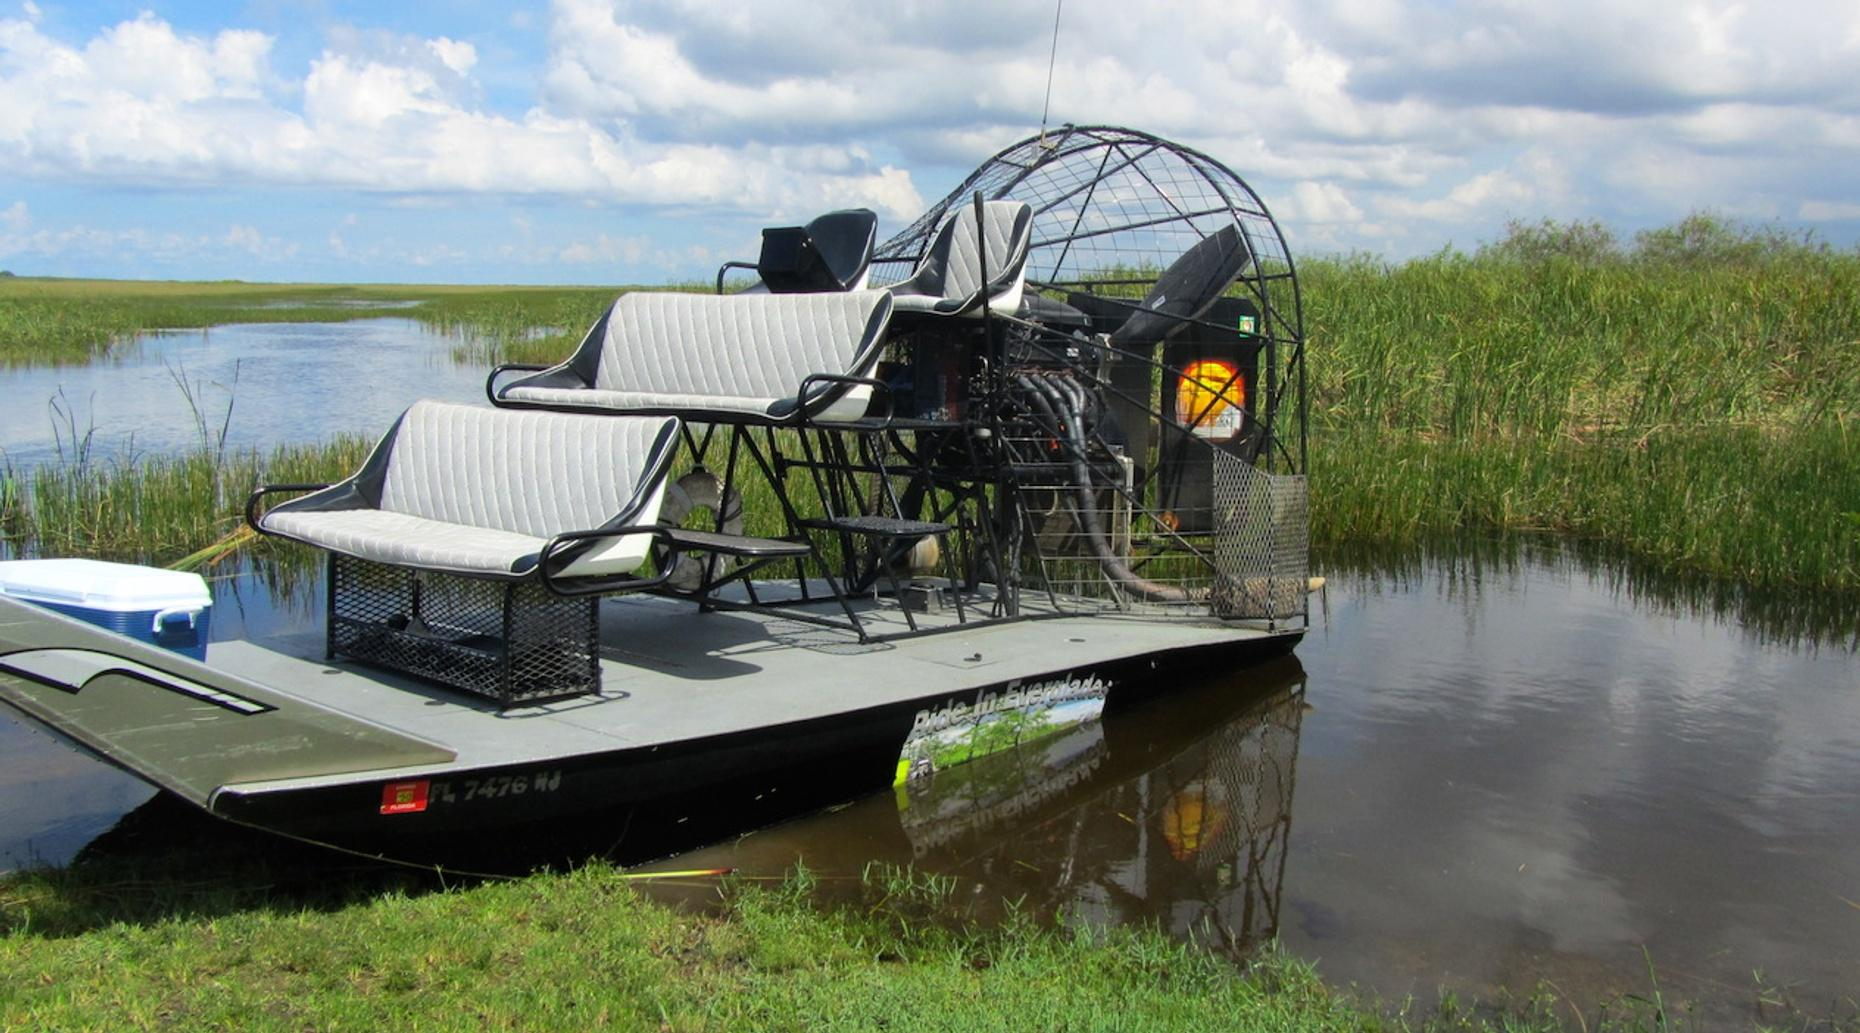 2.5-Hour Private Everglades Airboat Tour